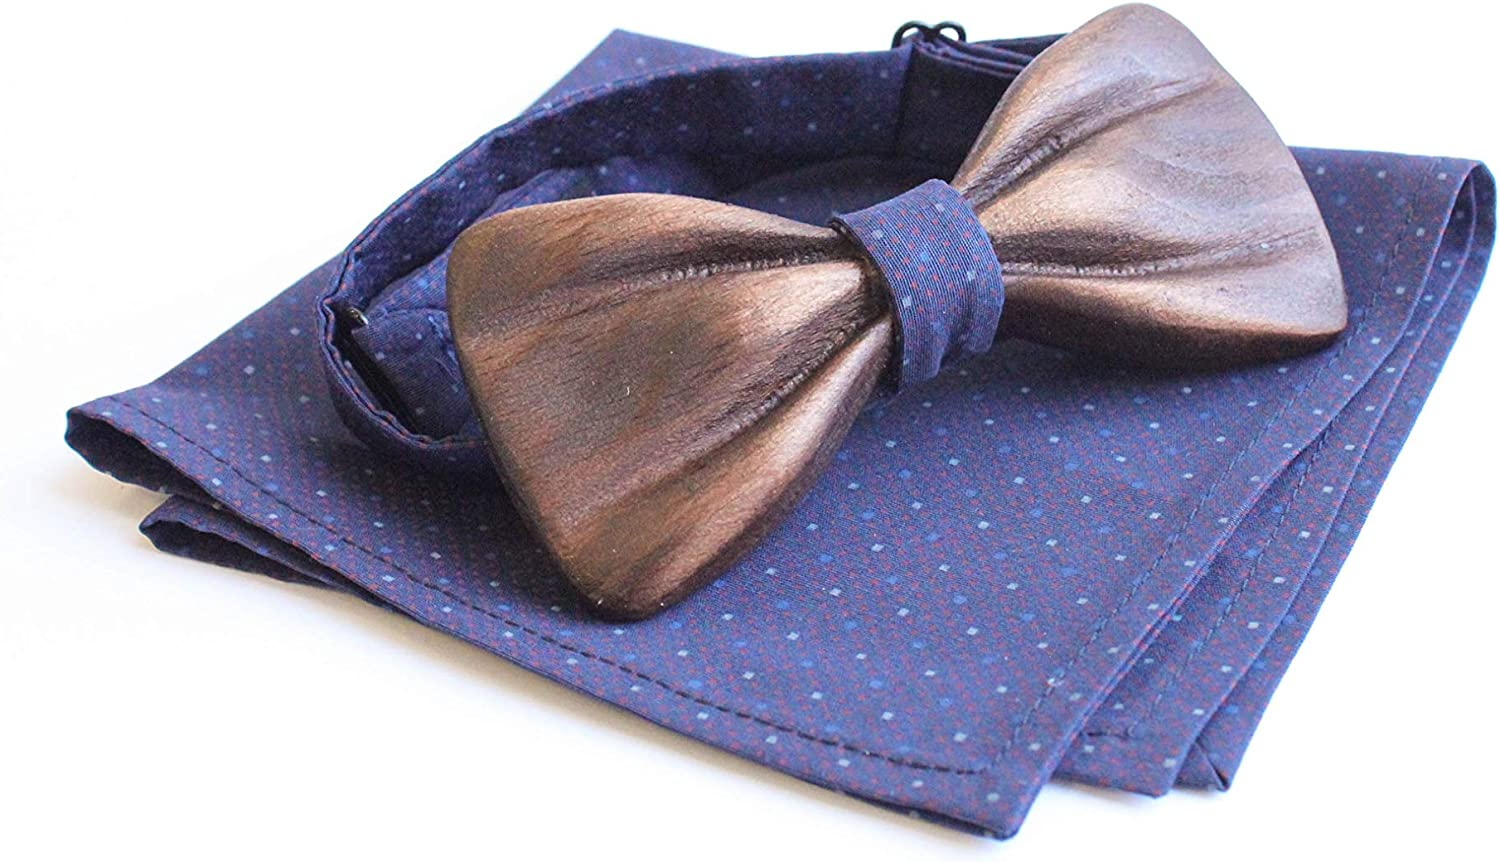 Krago Wooden Men's Bowties with Handkerchief for Business Formal Tuxedo Wedding Gift - 3D Natural Wood Pre-Tied Bow Ties